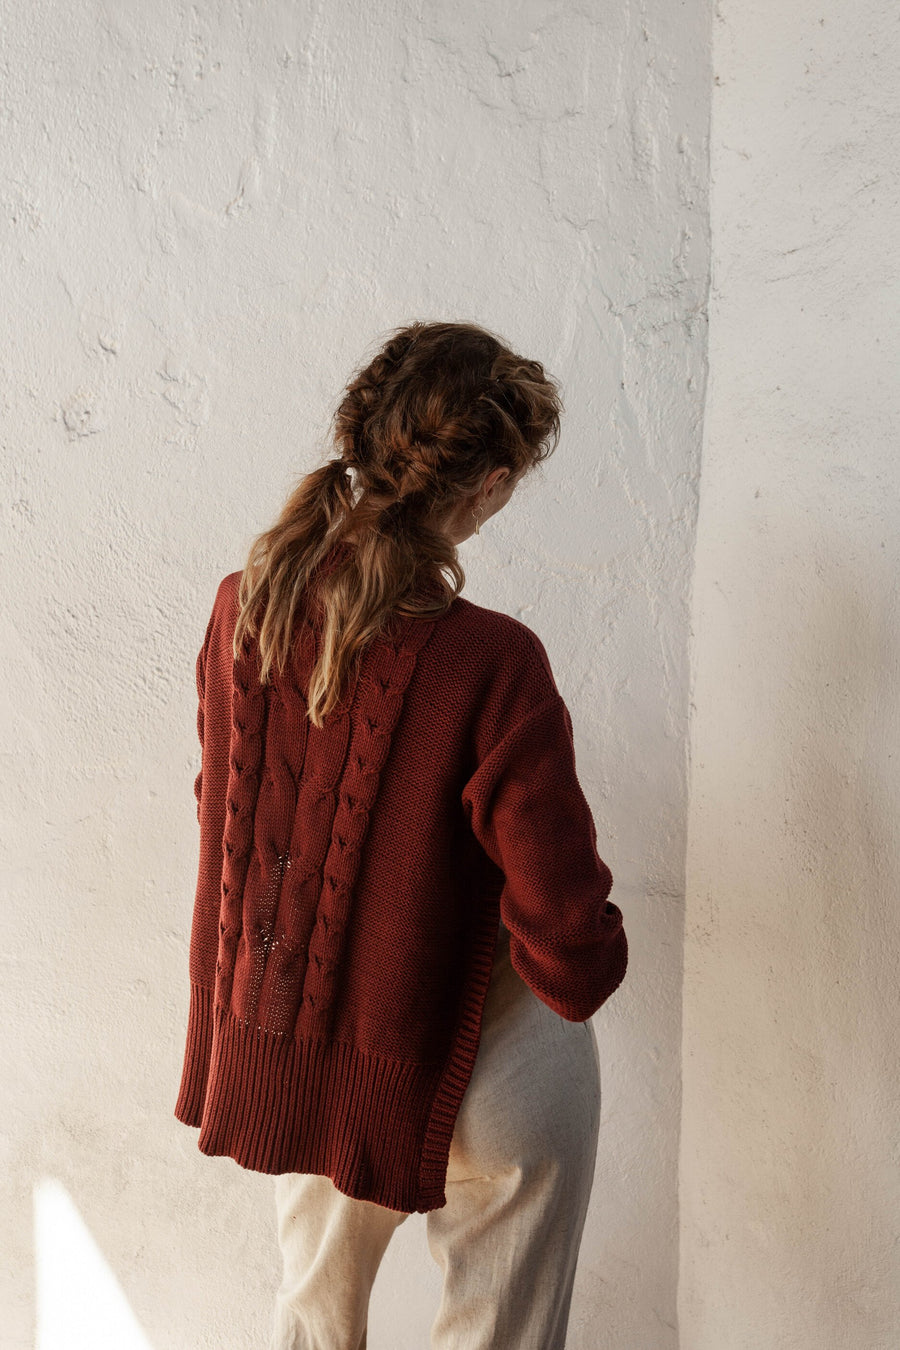 Marcel Jumper - Merlot - 100% Cotton Yarn